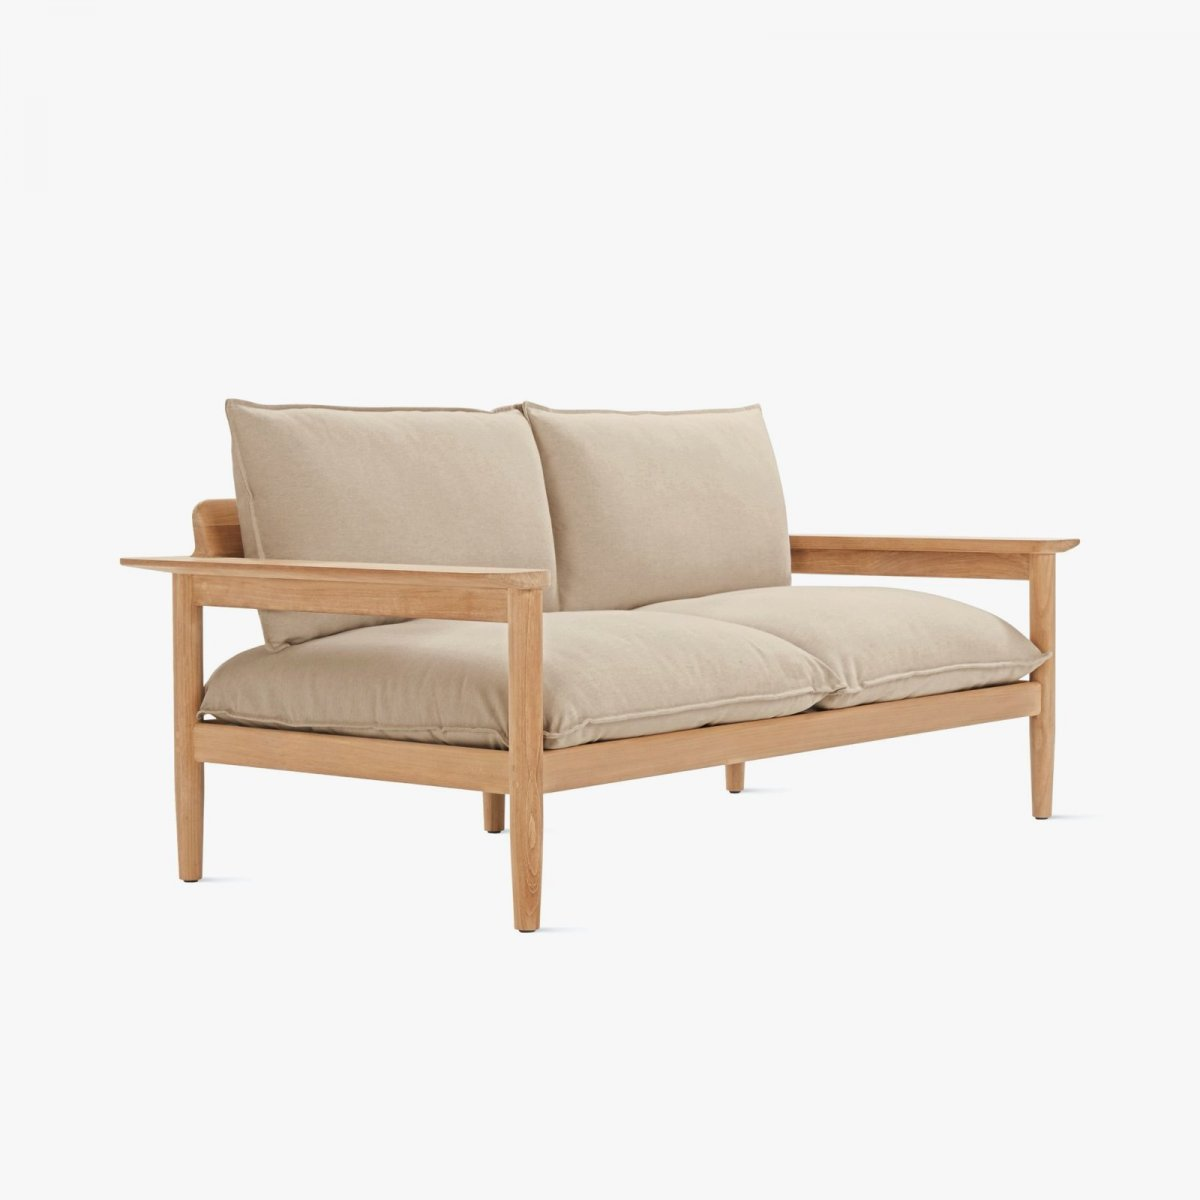 Terassi Two-Seater Sofa, papyrus.